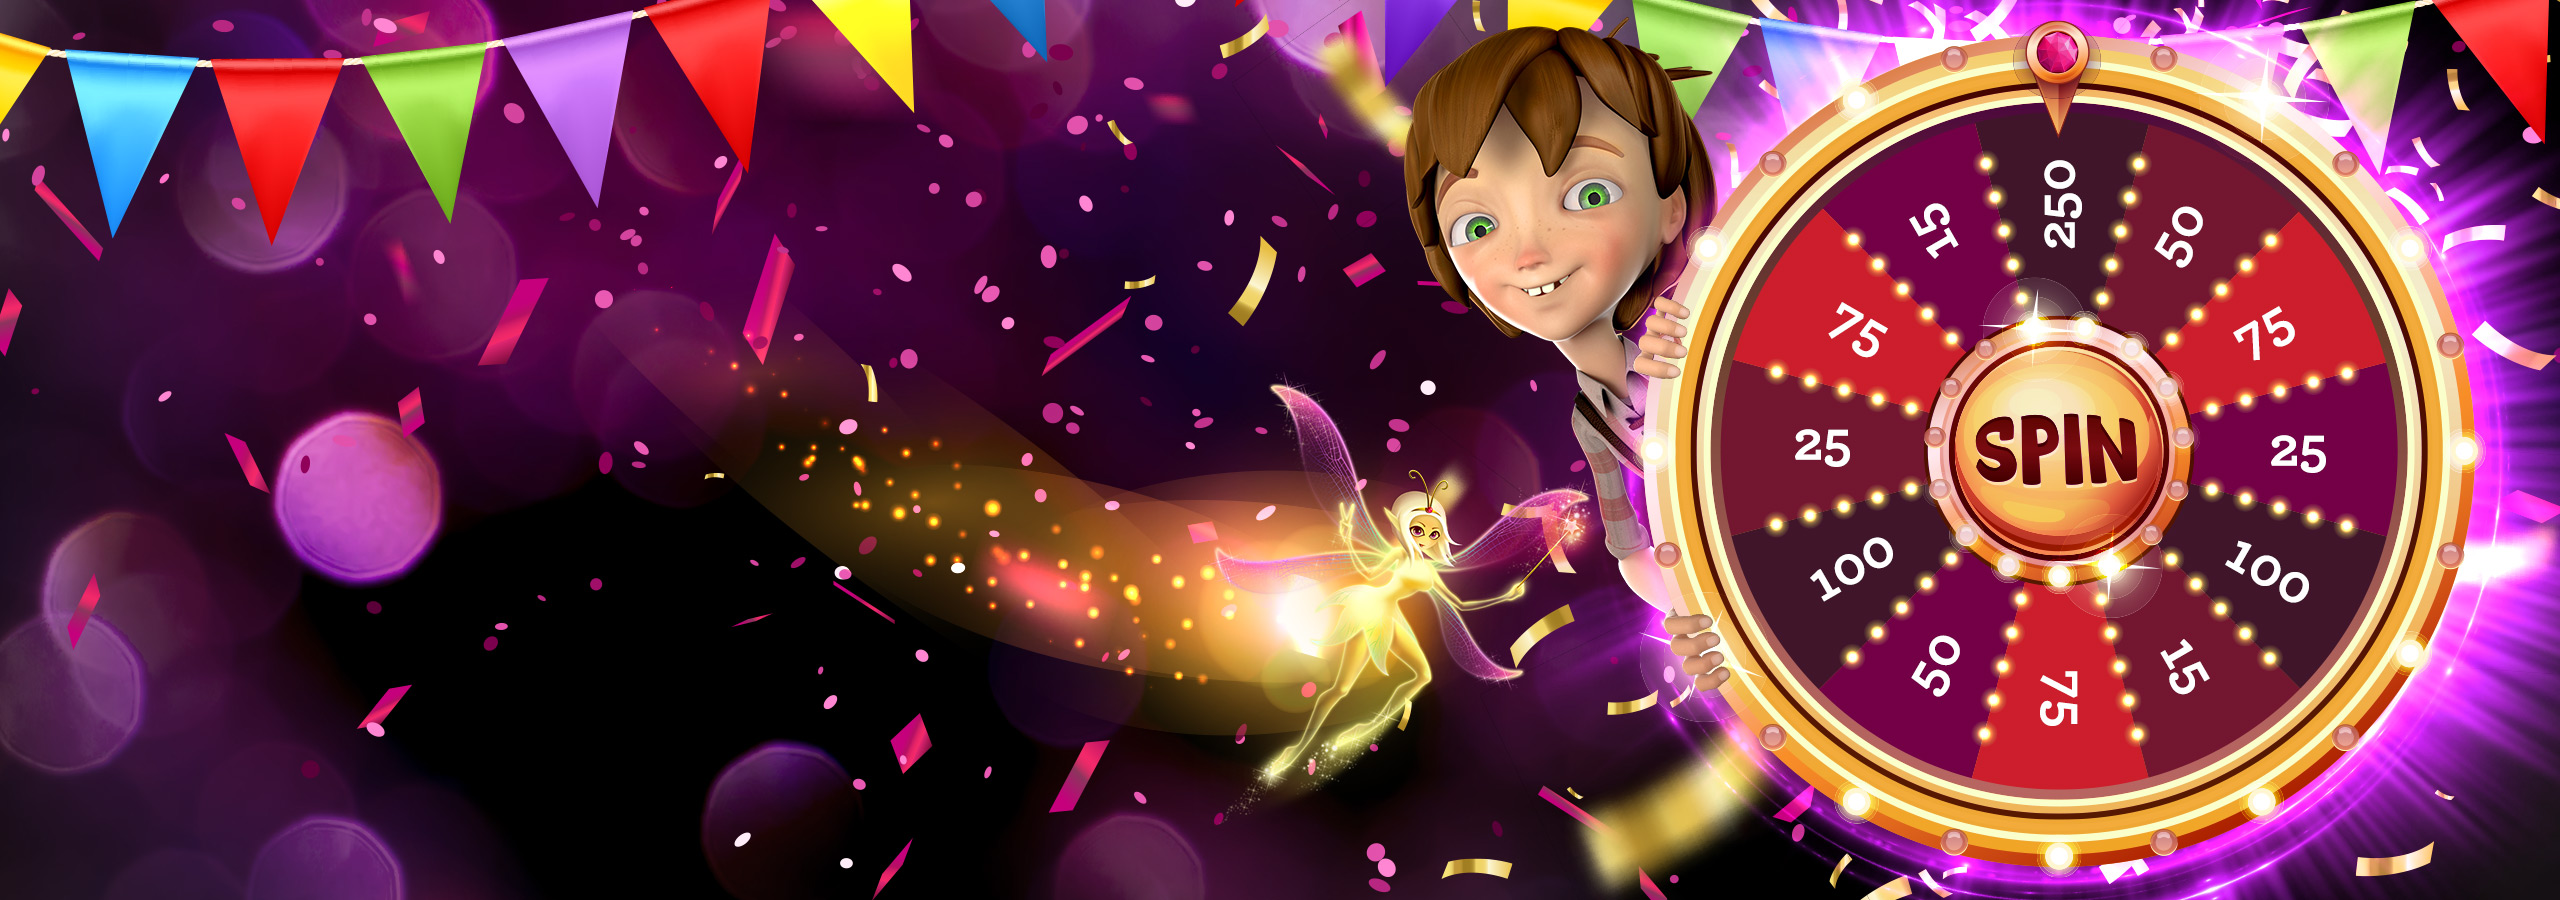 **100% UP TO €100** **ALSO** **SPIN THE WHEEL GRAB THE FORTUNE!** (Up to 250 extra spins)